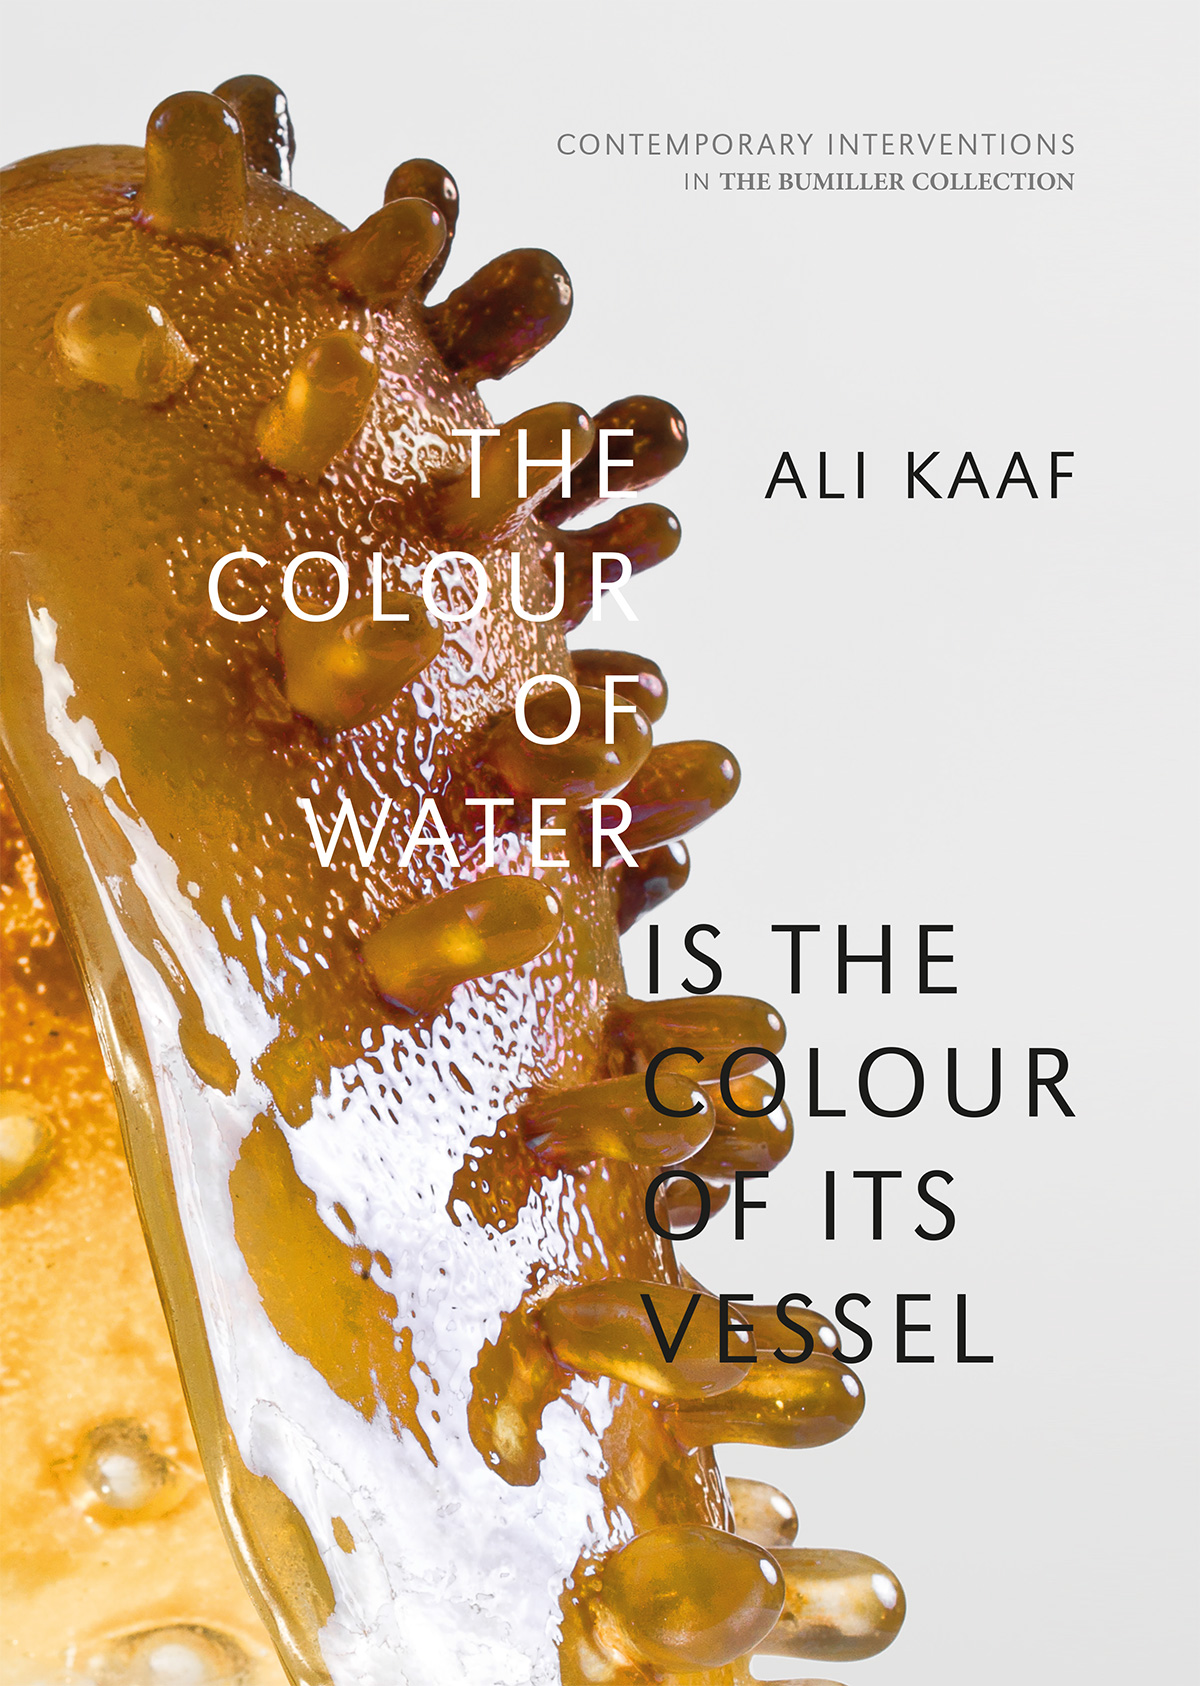 THE COLOUR OF WATER IS THE COLOUR OF ITS VESSEL